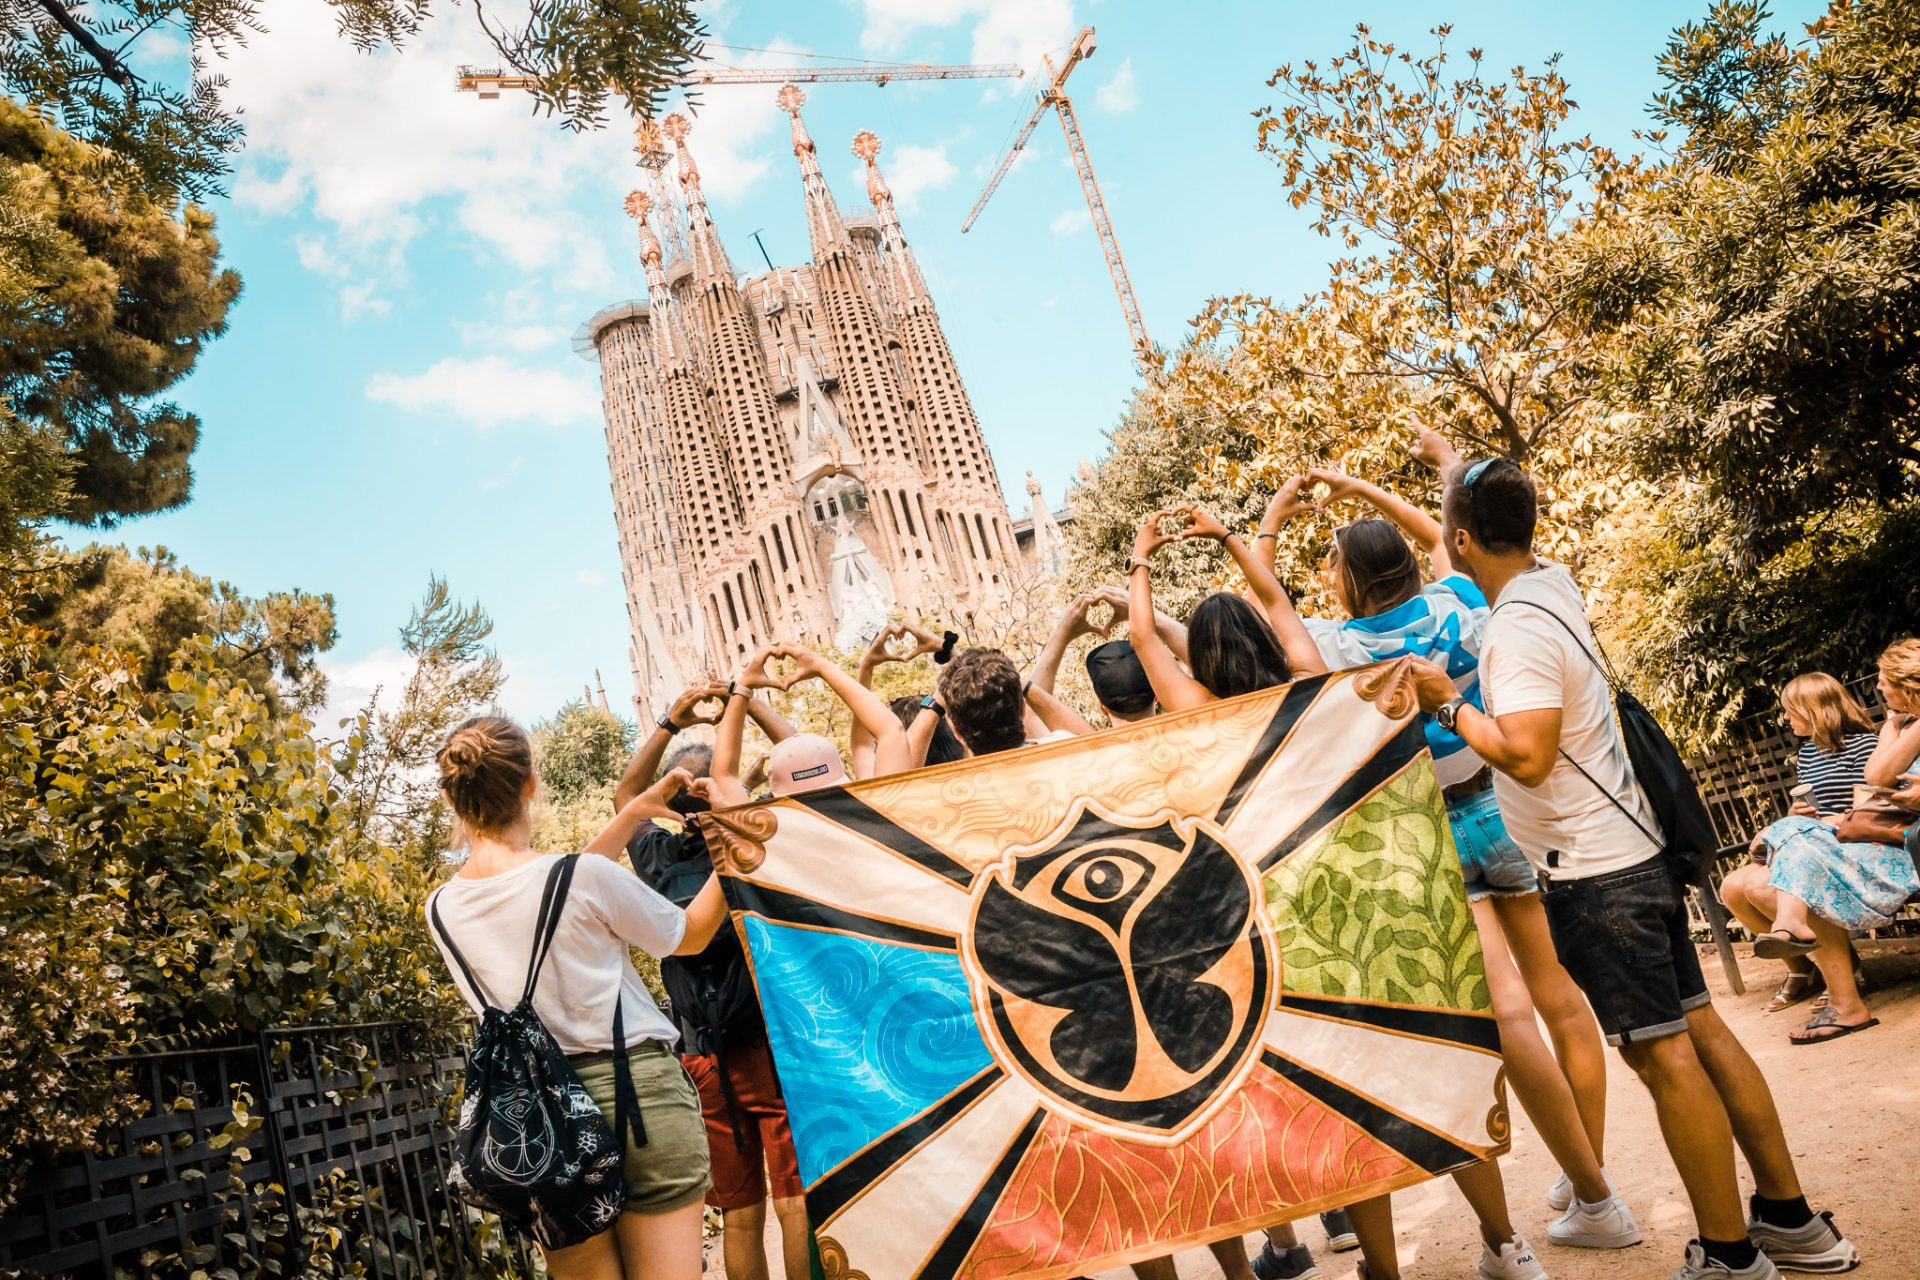 Sagrada Familia in Barcelona - Discover Europe by Tomorrowland